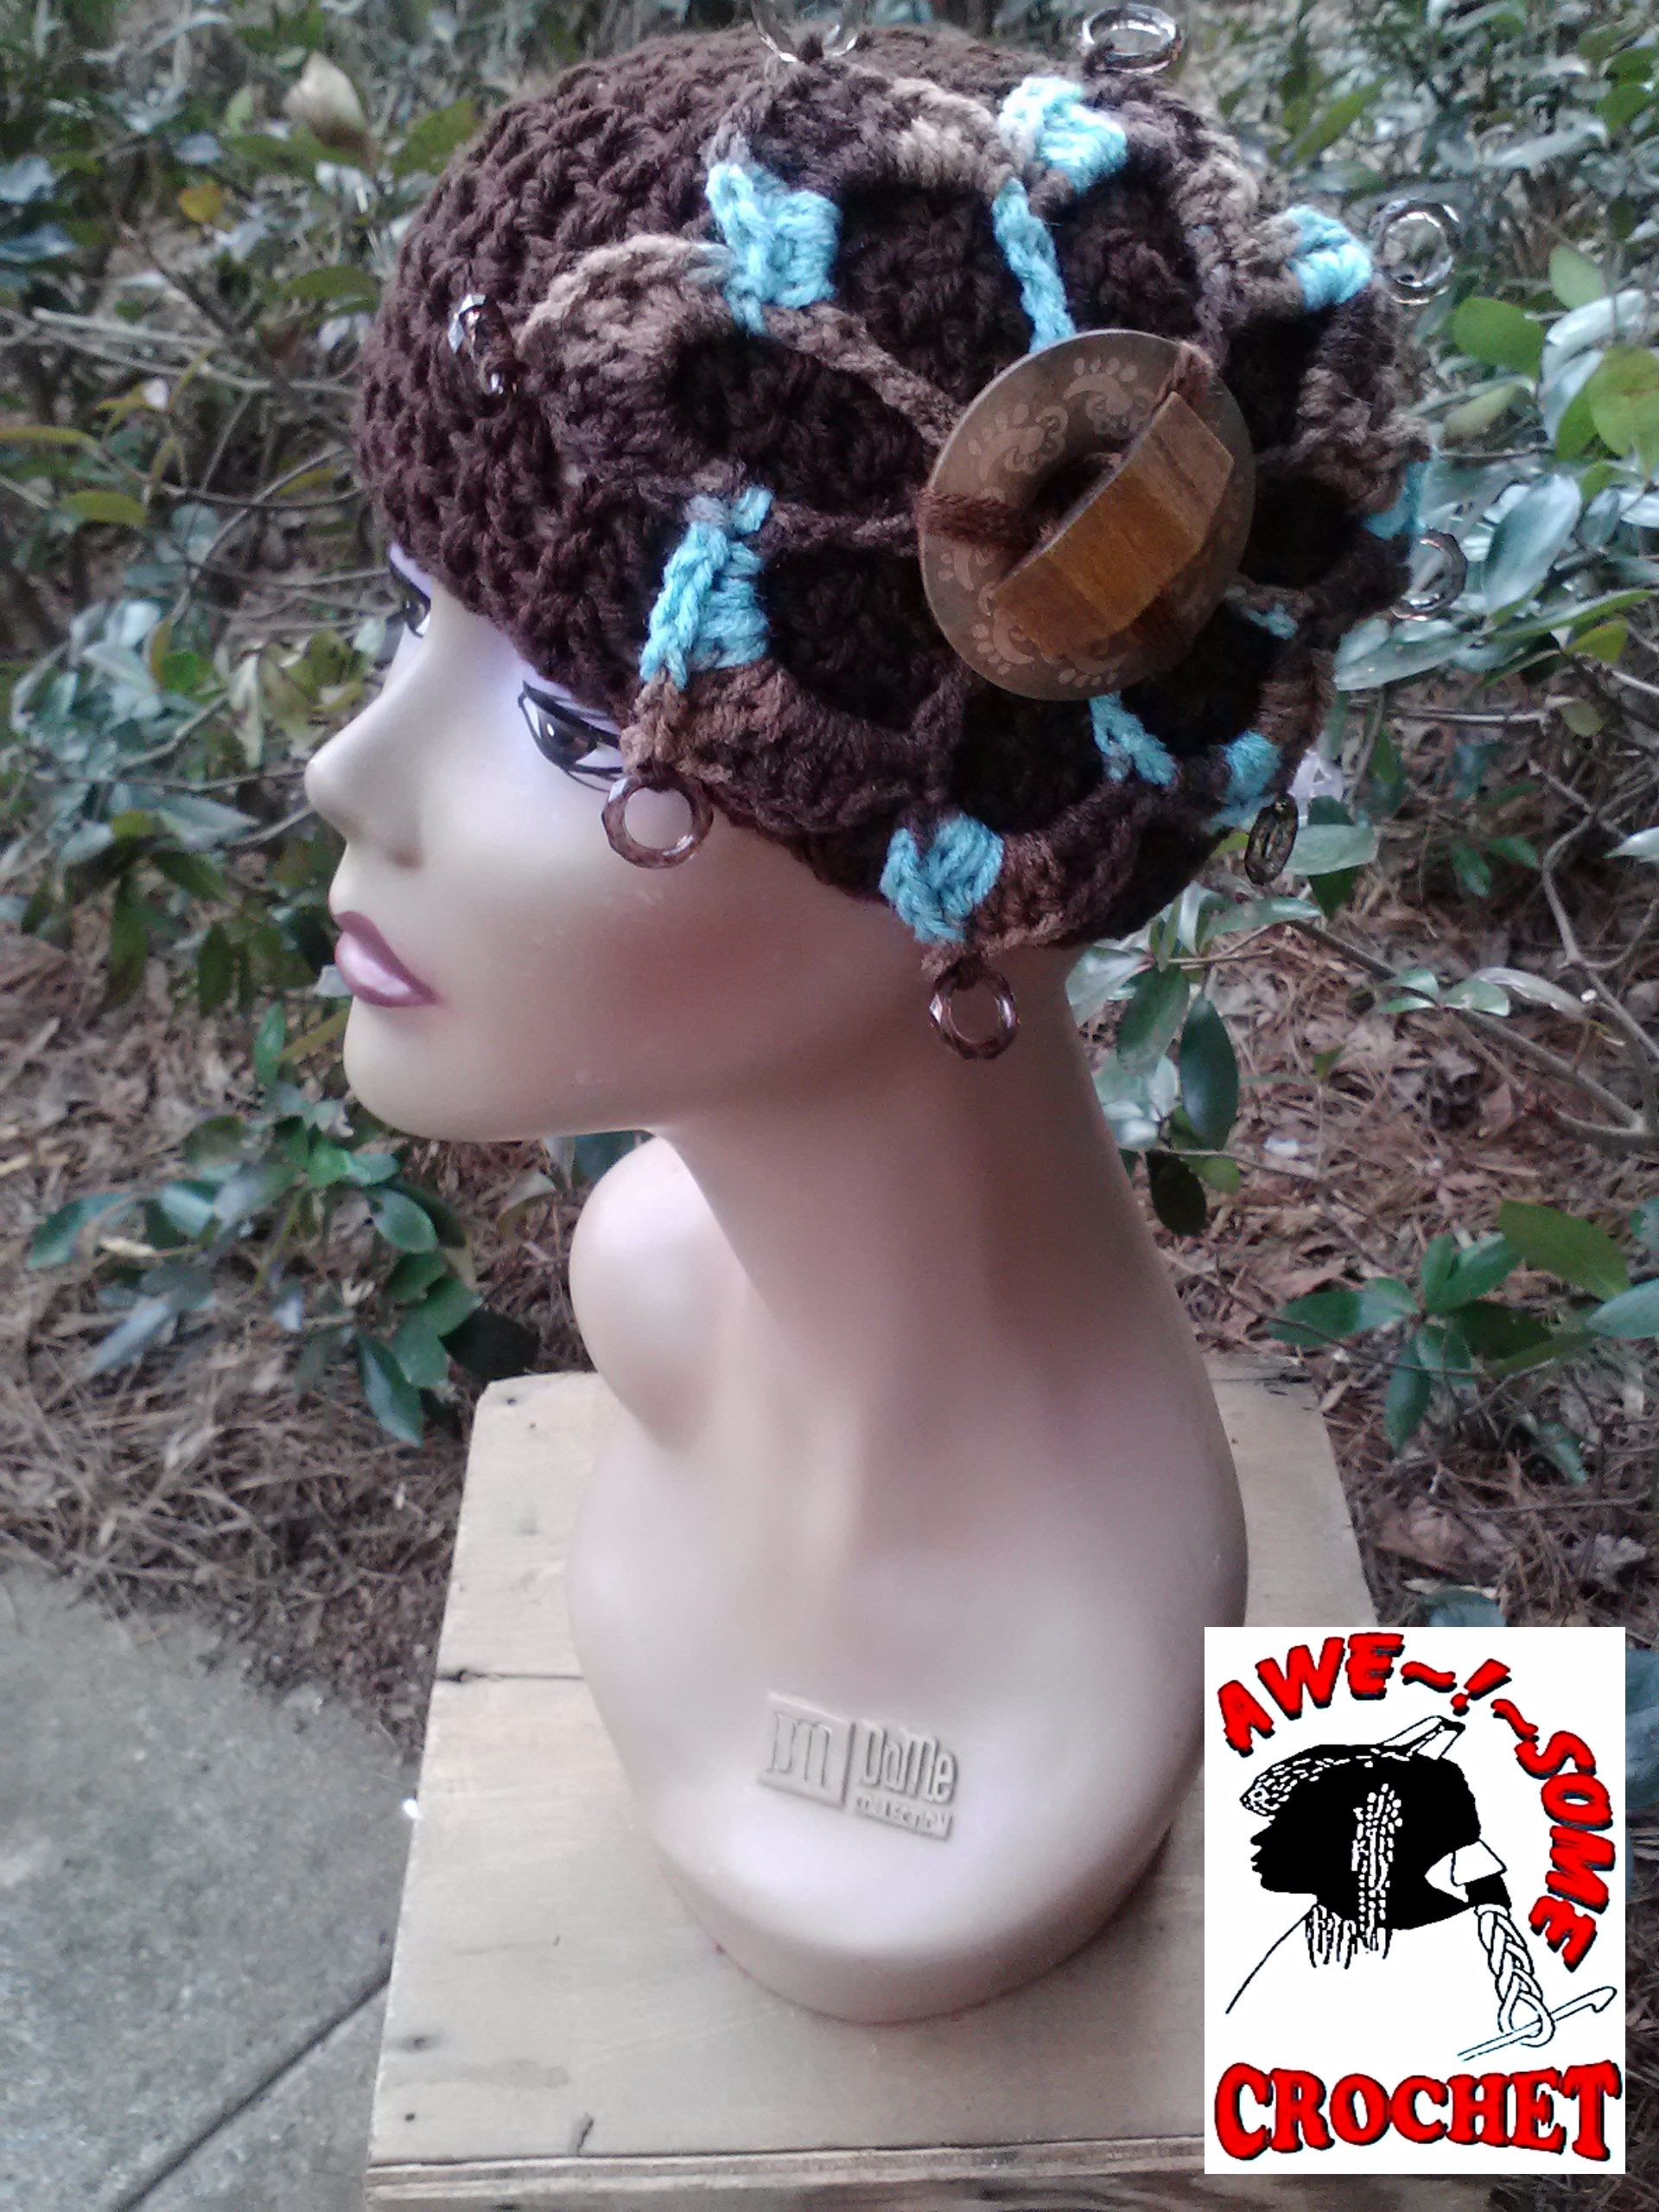 Aaliyah Hat (Arabic/Hebrew meaning high,  exalted,to ascend) beaded and wooden embellishments (DAY 93) AWE!Some Crochet #hat by Gina Renay .... available for purchase